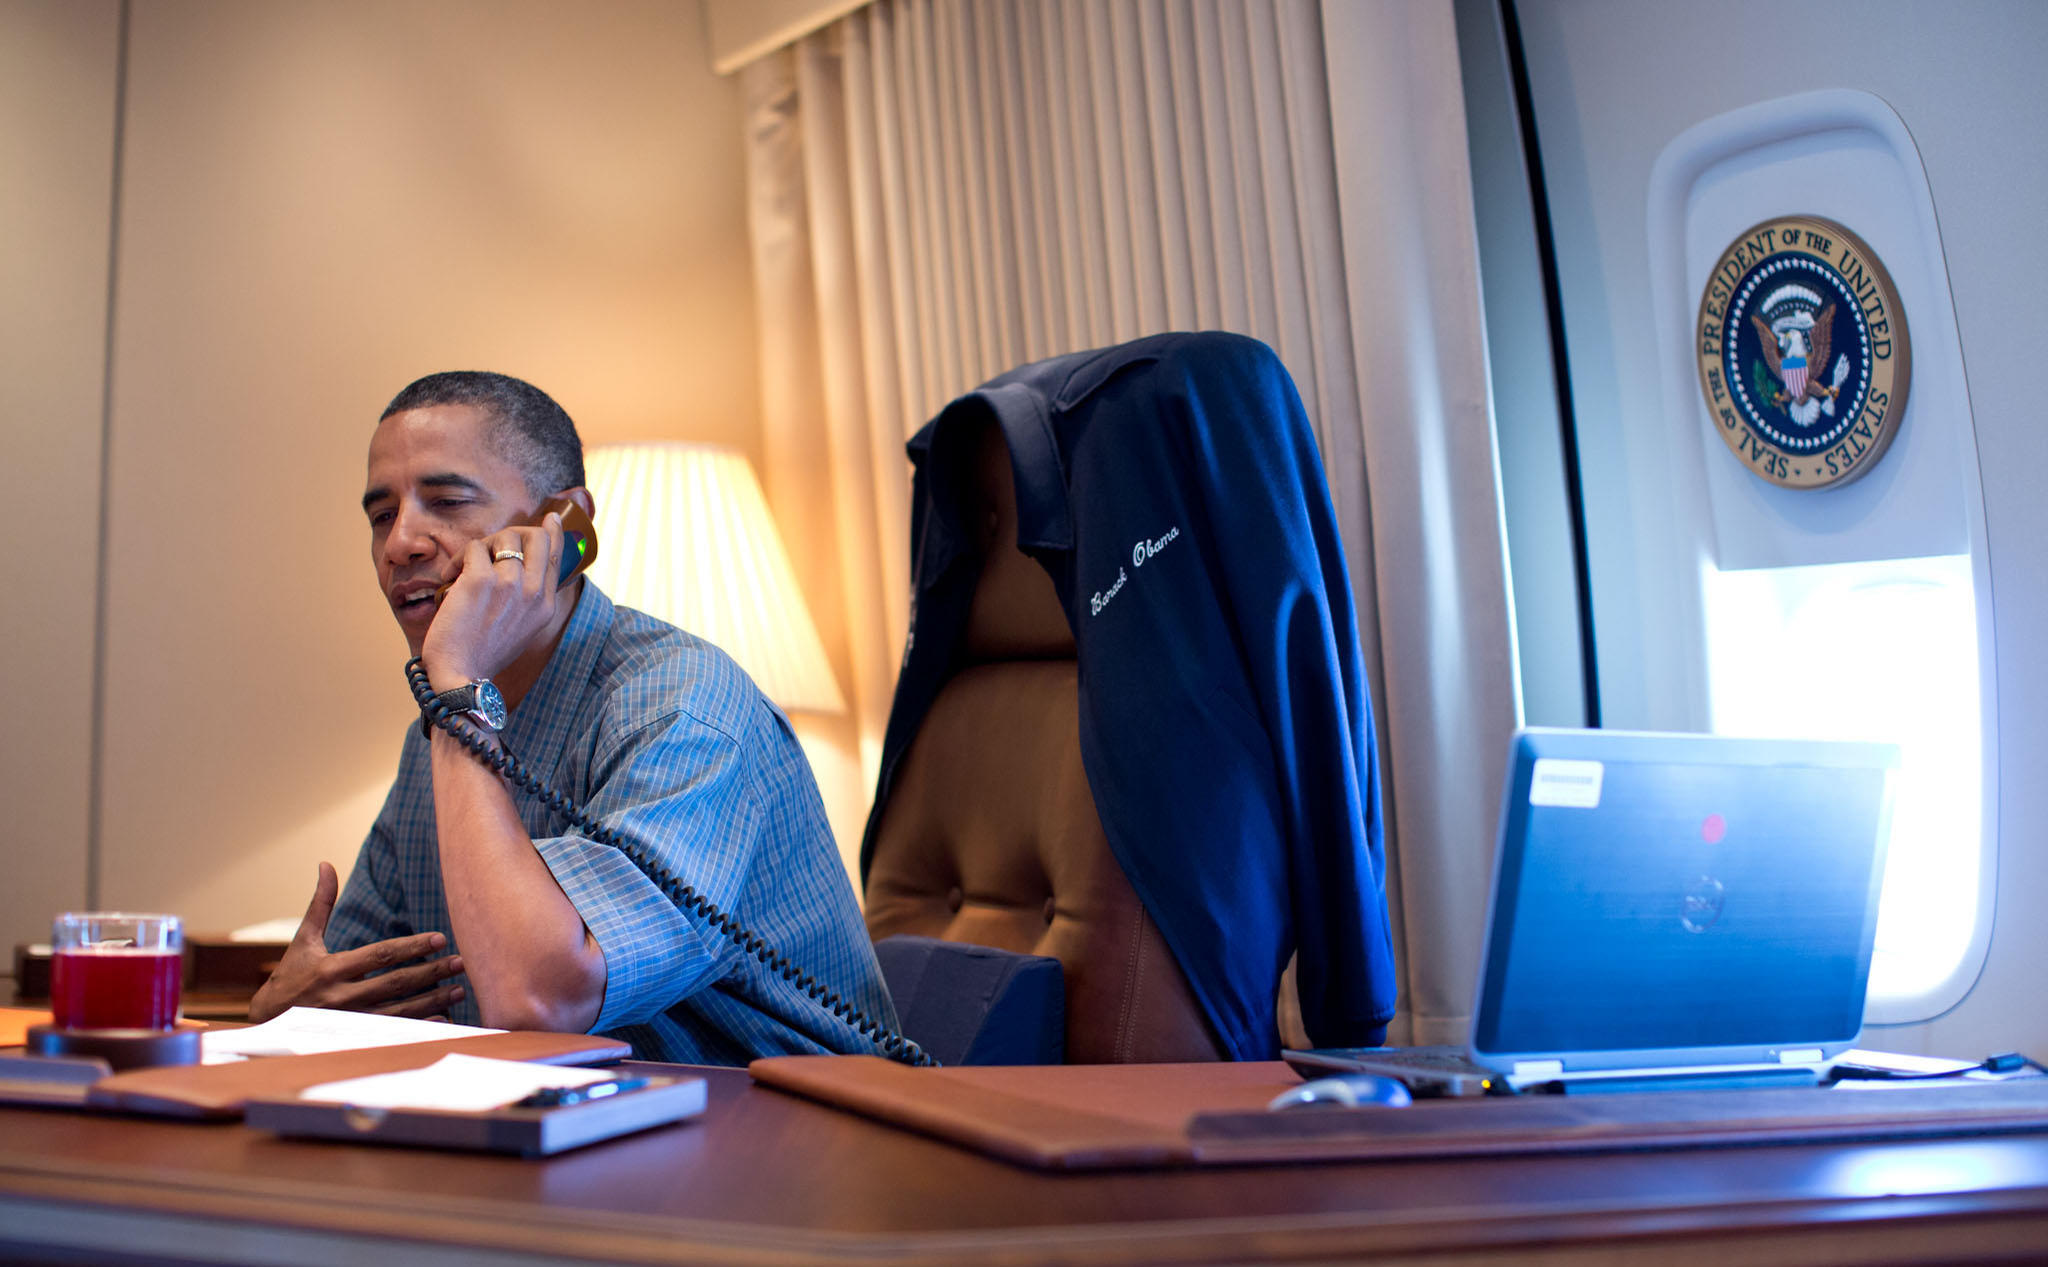 President Barack Obama talks on the phone with NASA's Curiosity Mars rover team aboard Air Force One during a flight to Offutt Air Force Base in Nebraska, Aug. 13, 2012.